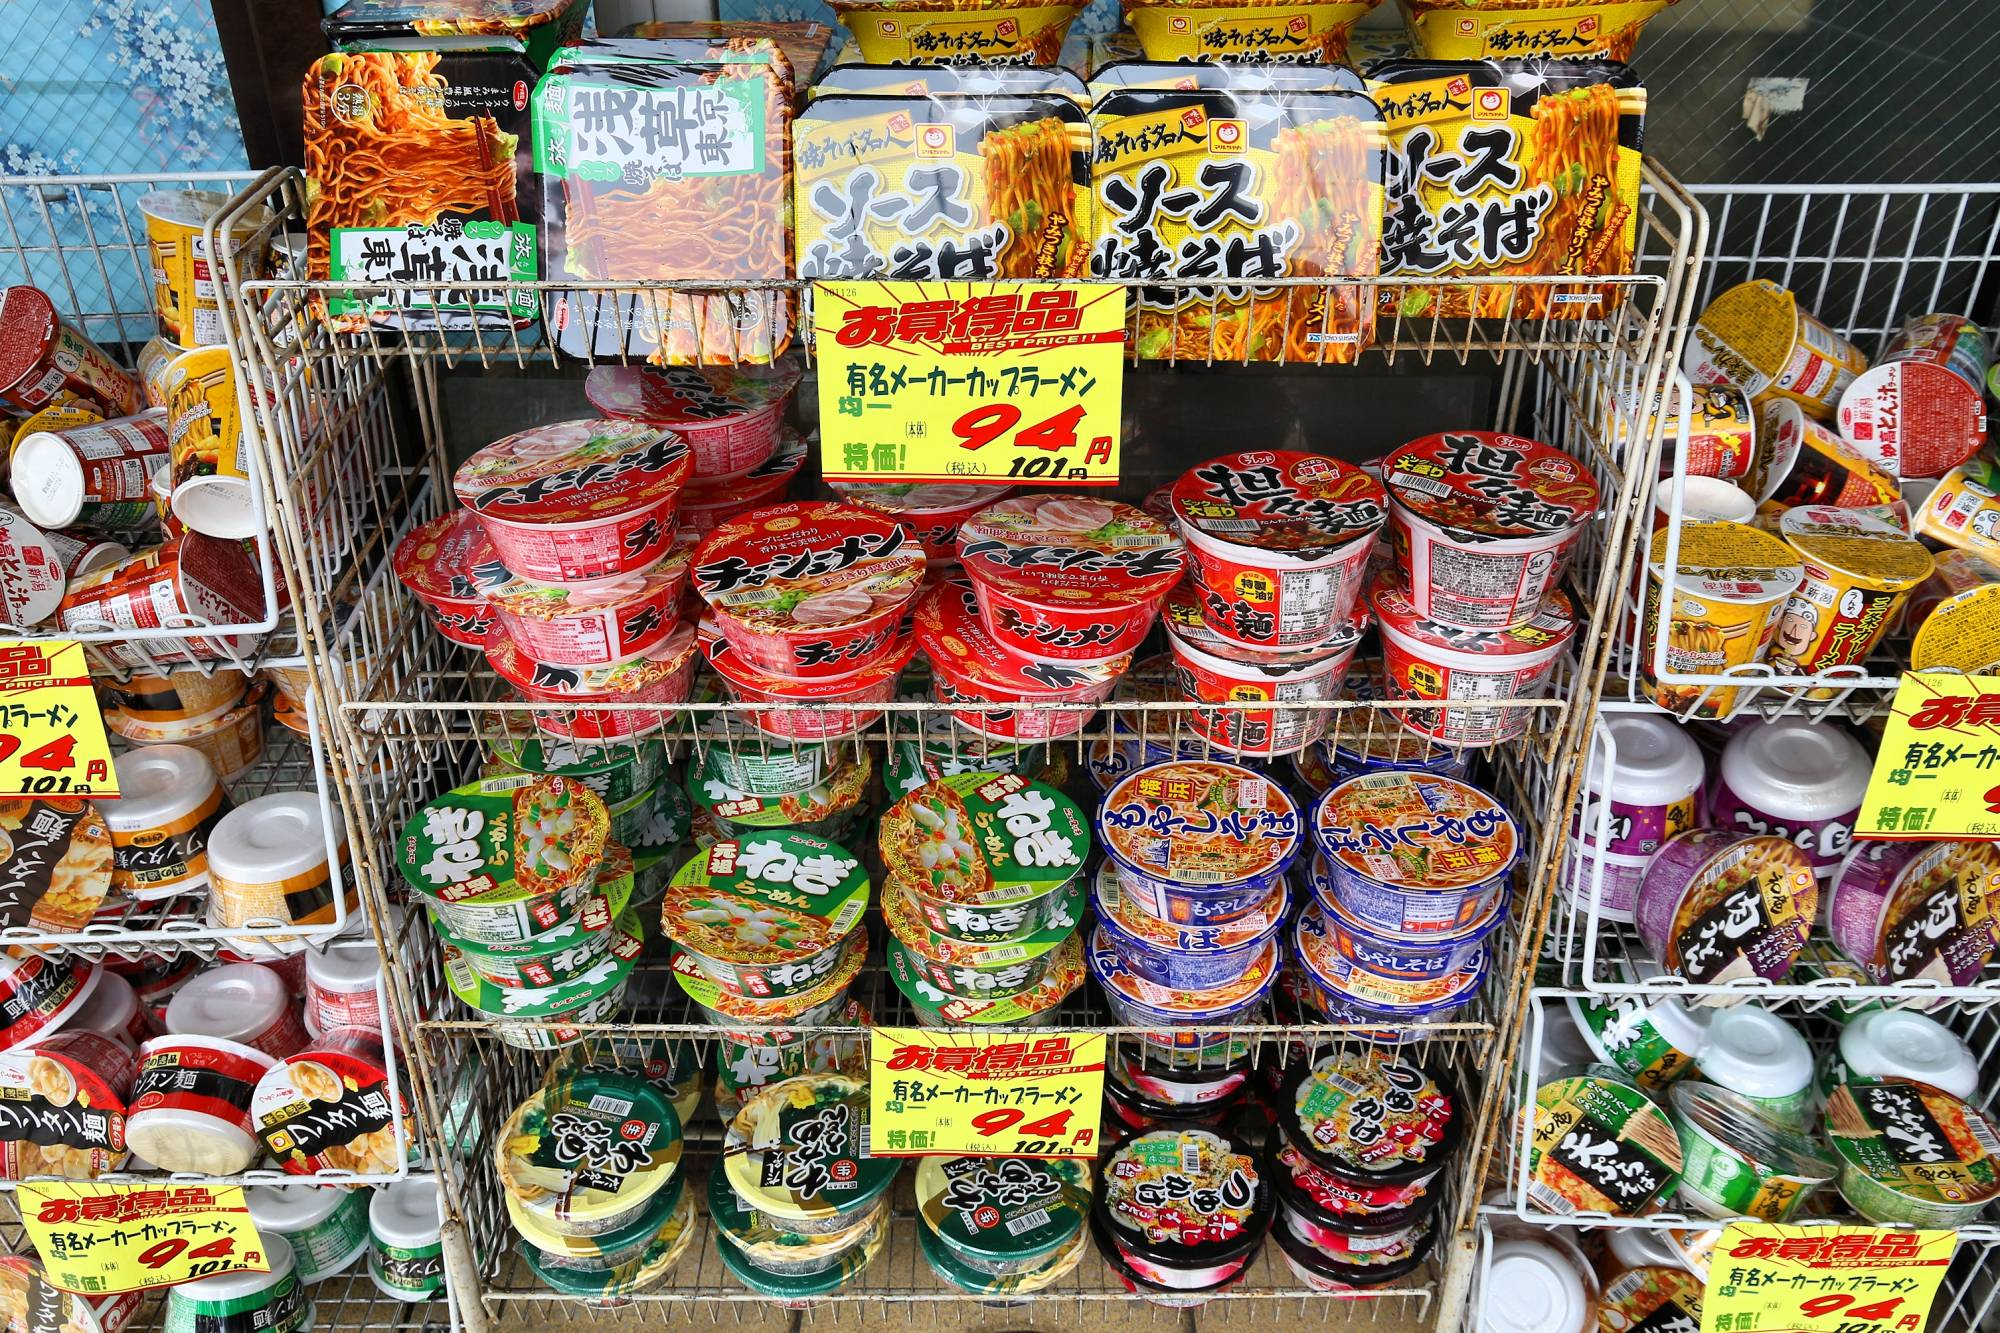 Use it or lose it: With added ingredients and a little imagination, emergency stocks of instant noodles people purchased in March can be transformed into a tasty snack. | GETTY IMAGES